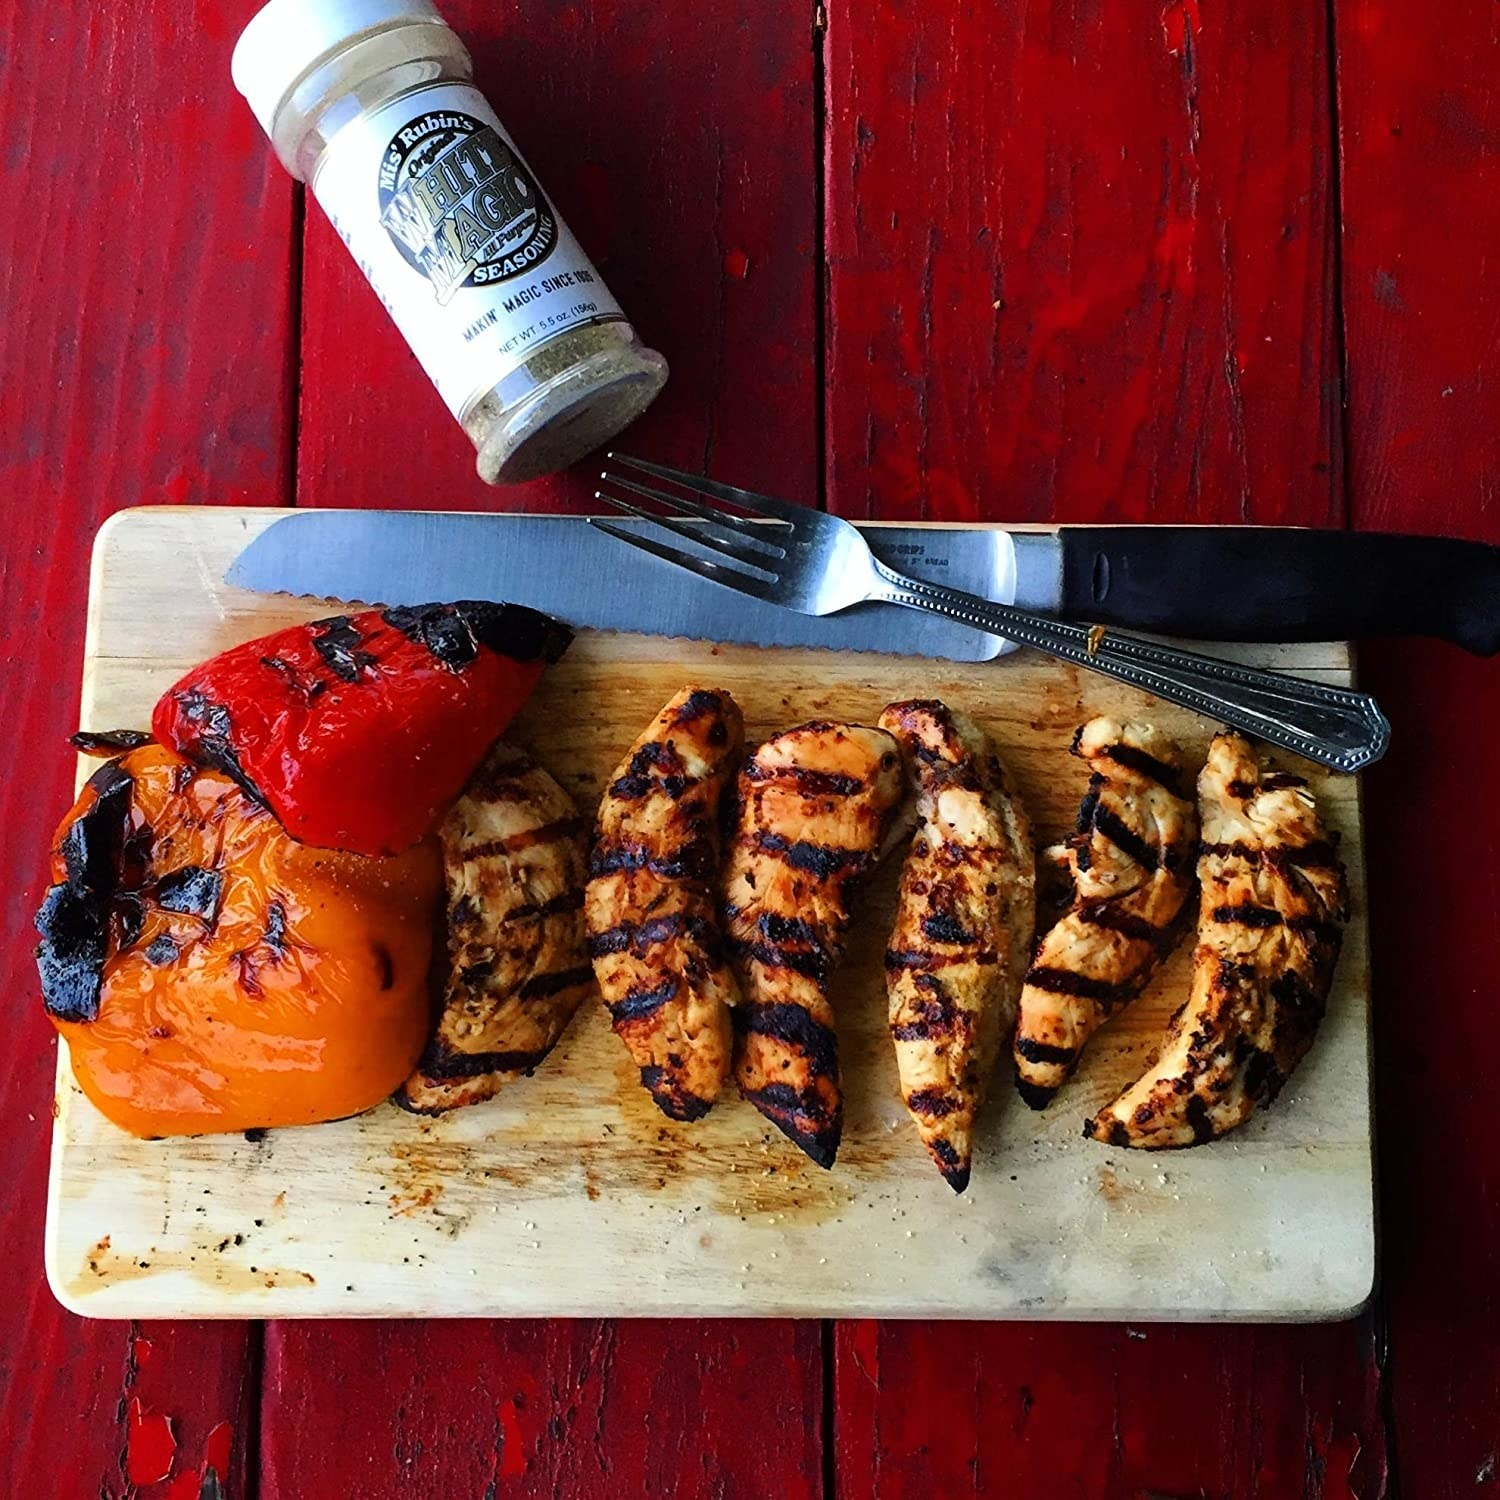 A bottle of Magic Dry Rub Spice Powder next to a plate of grilled chicken.